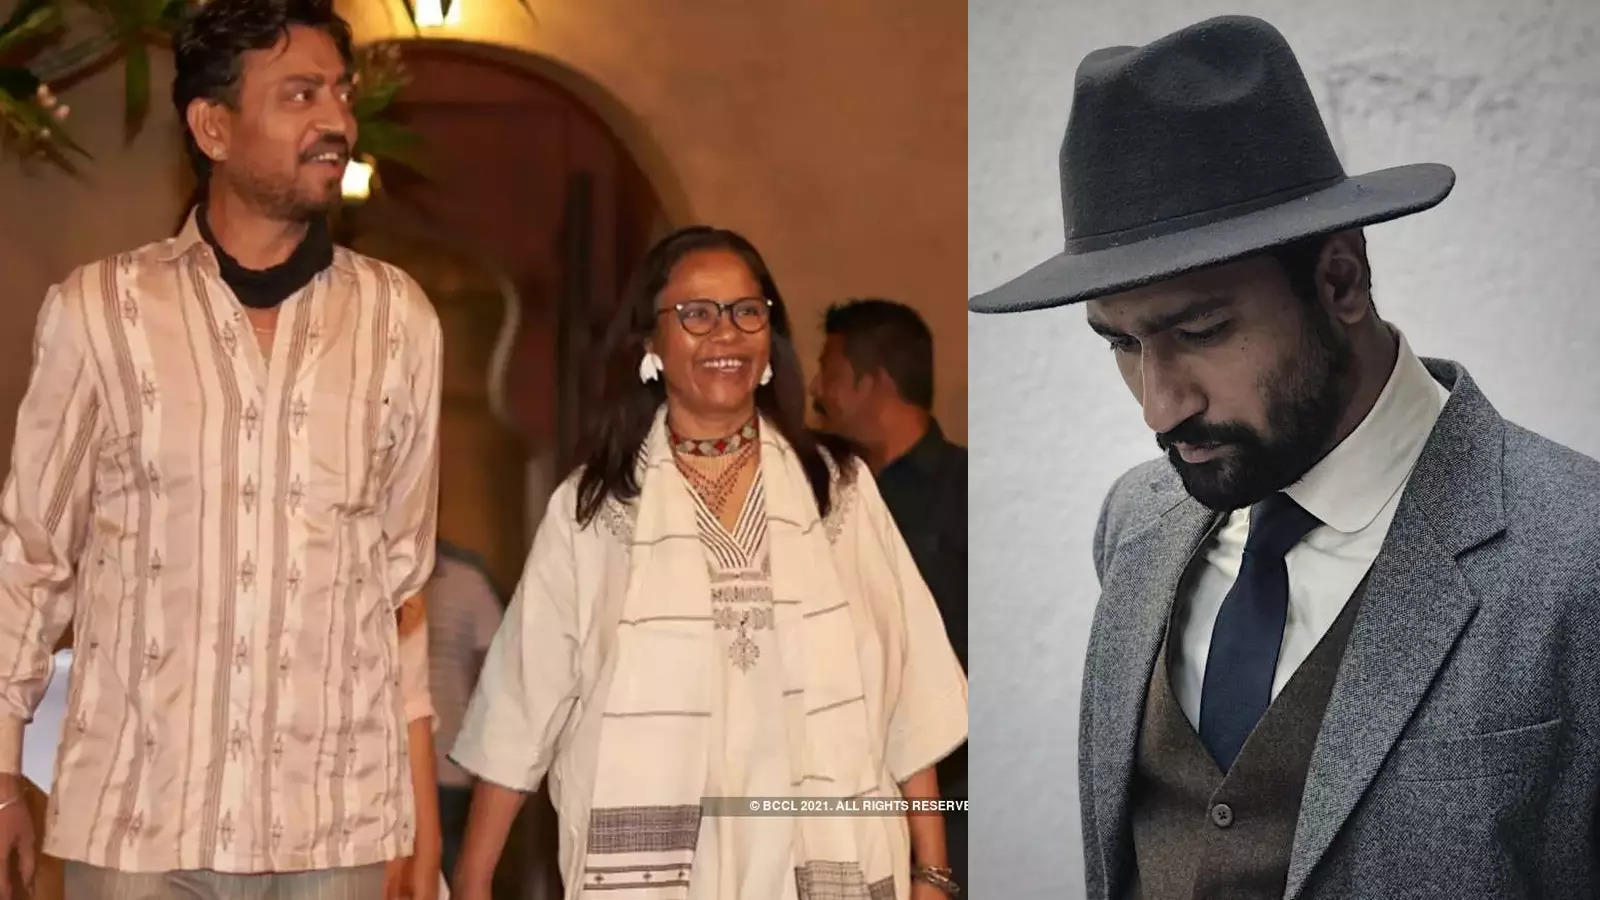 sutapa-sikdar-says-watching-vicky-kaushal-as-sardar-udham-flooded-her-with-memories-of-husband-irrfan-khan-reveals-it-was-the-late-actors-dream-role